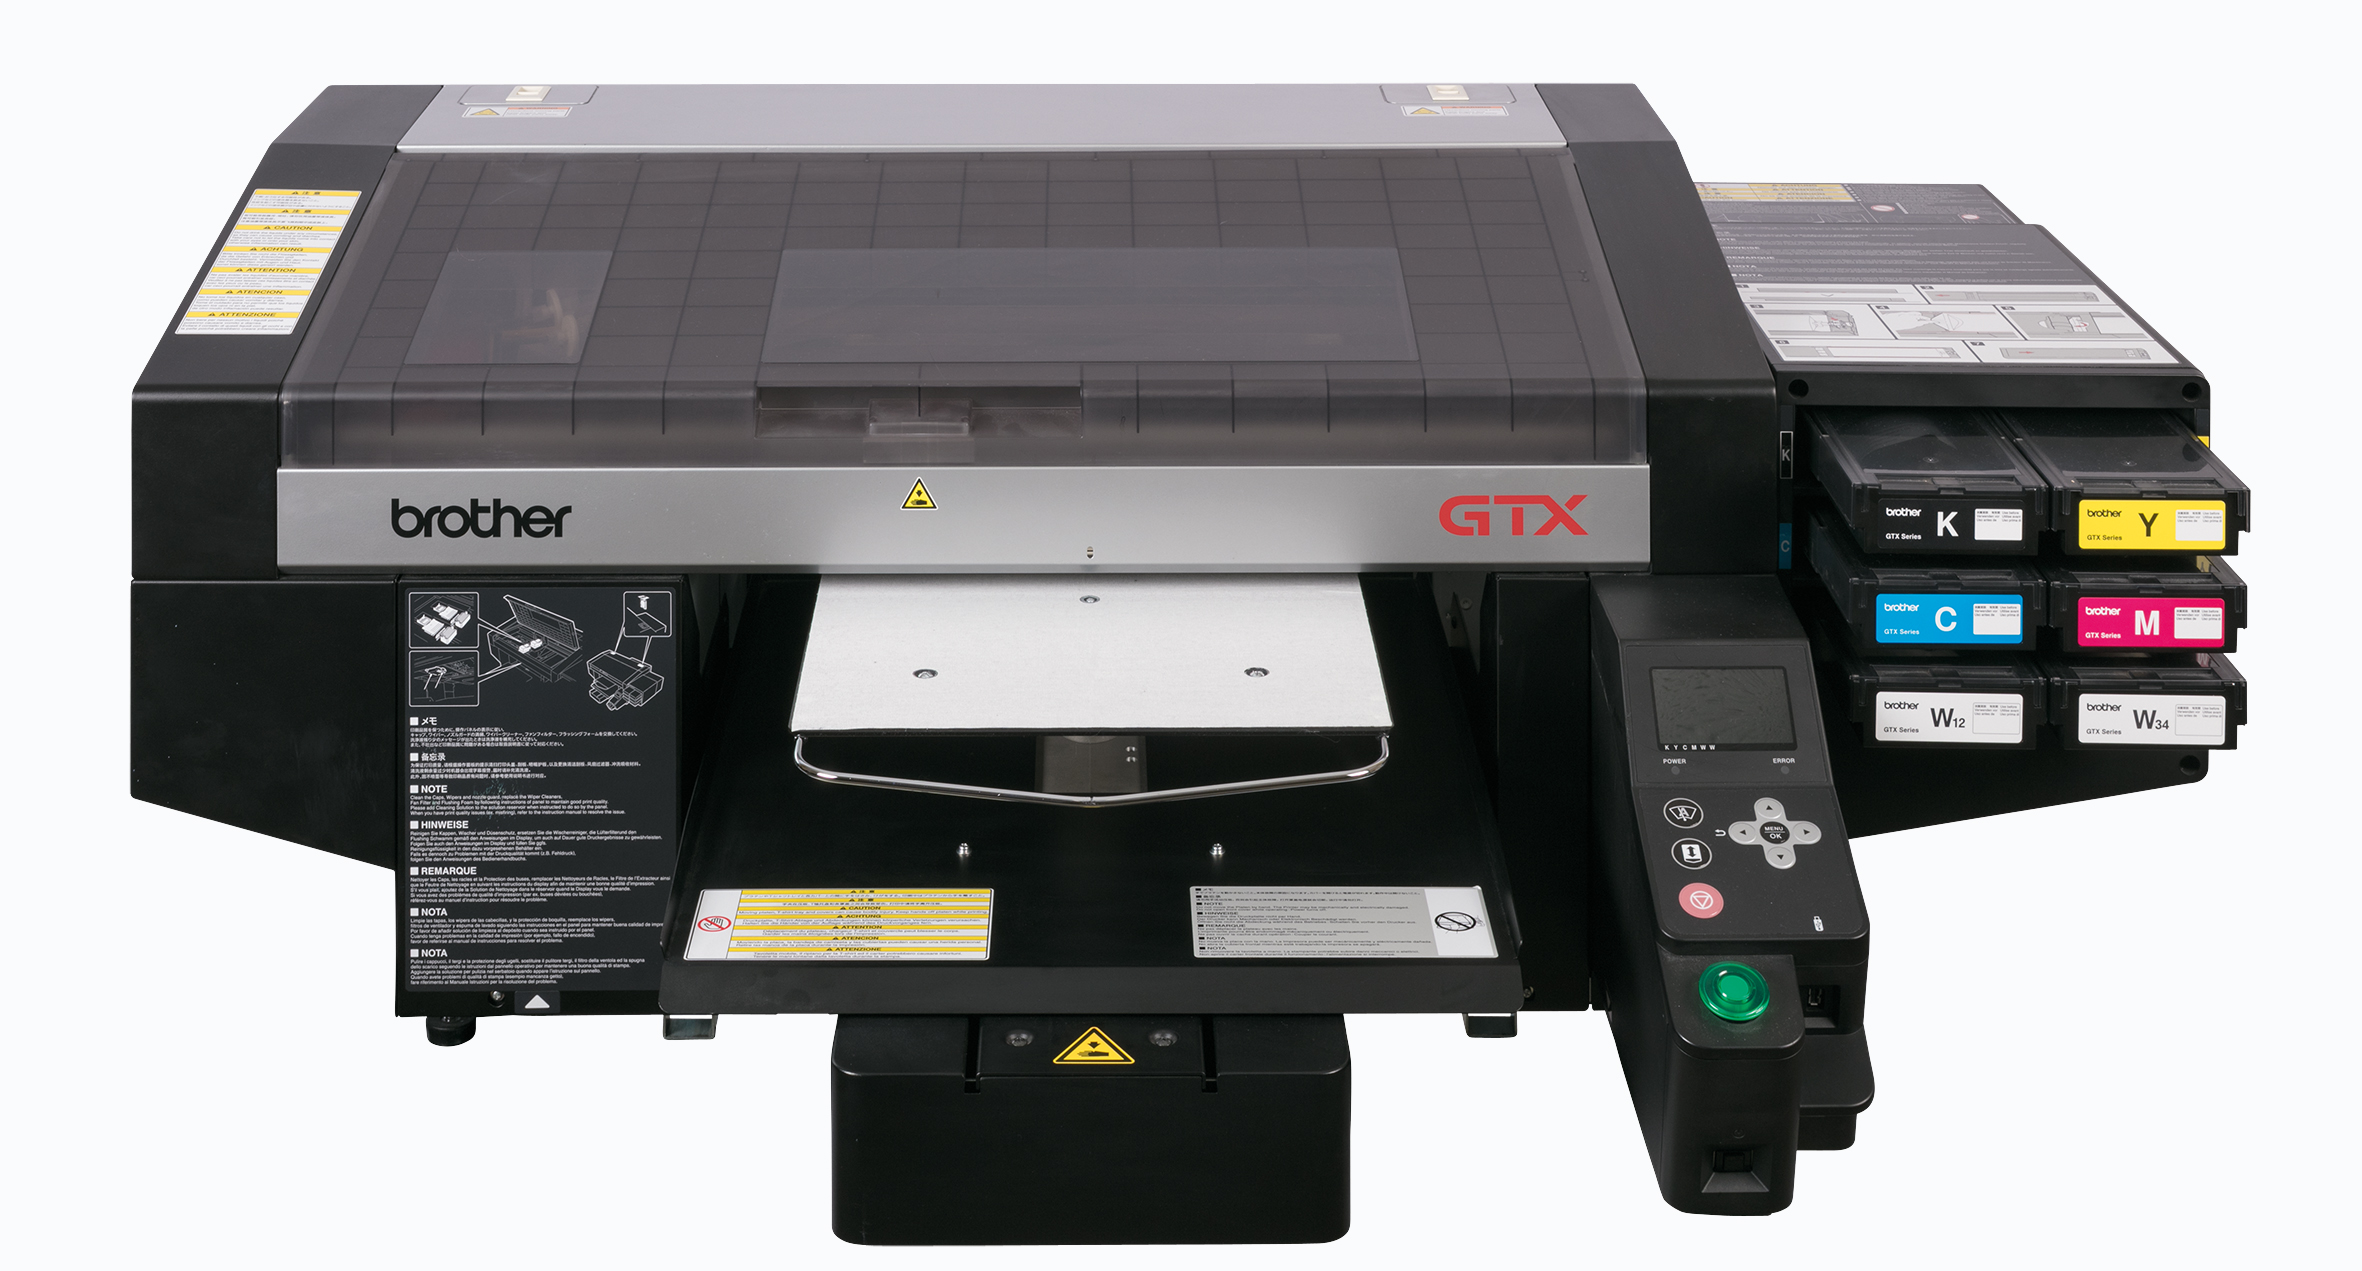 The Next Generation DTG Printer From Brother Has Landed